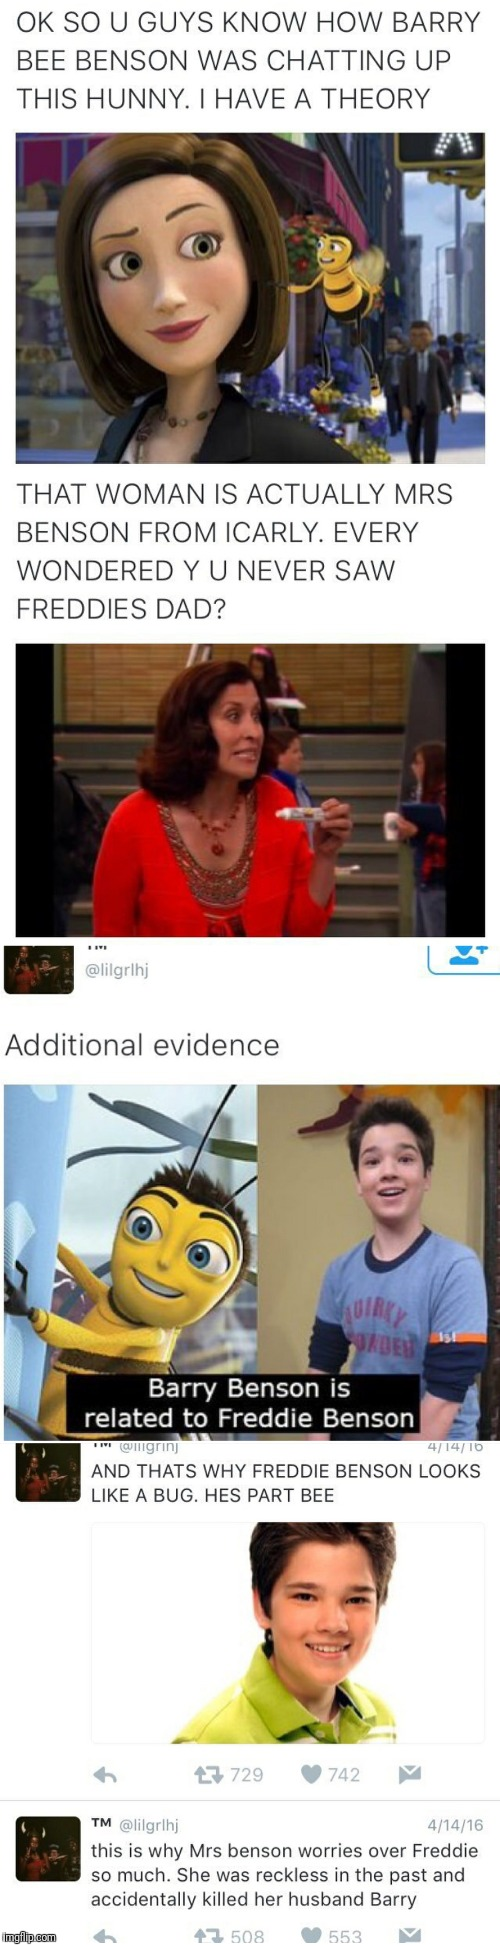 Bary Bee Benson | image tagged in bee movie | made w/ Imgflip meme maker